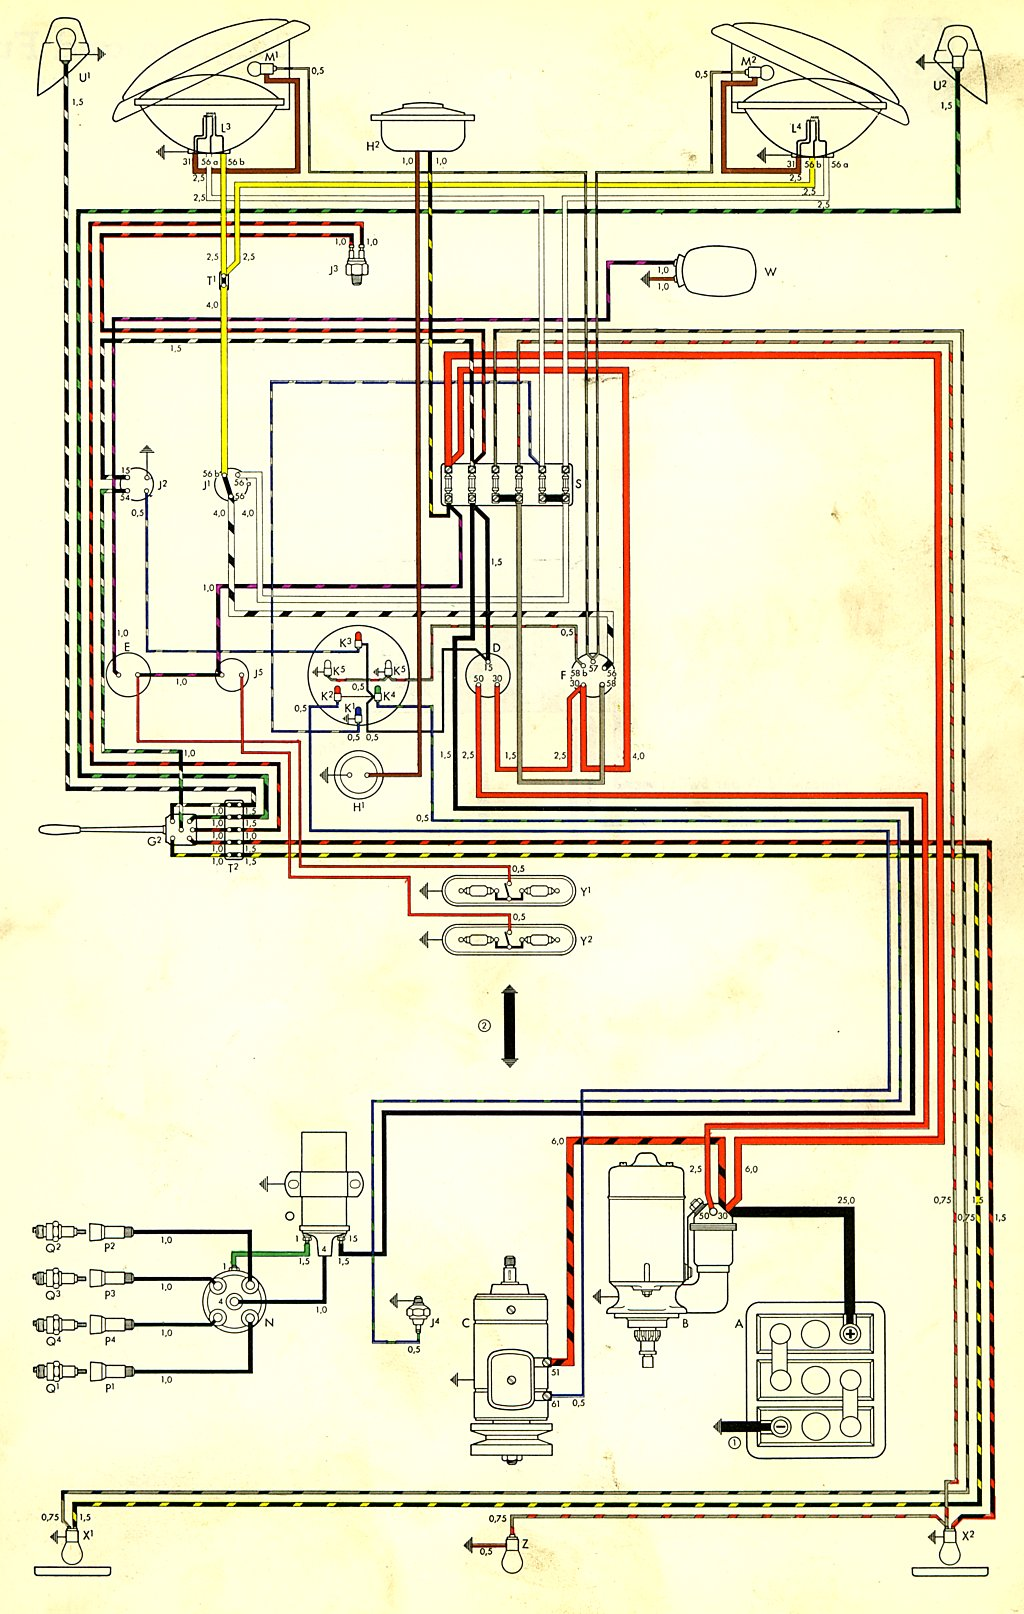 Thesamba Com Type 2 Wiring Diagrams 1975 VW Beetle Wiring Diagram Vw Bus  Wiring Diagram